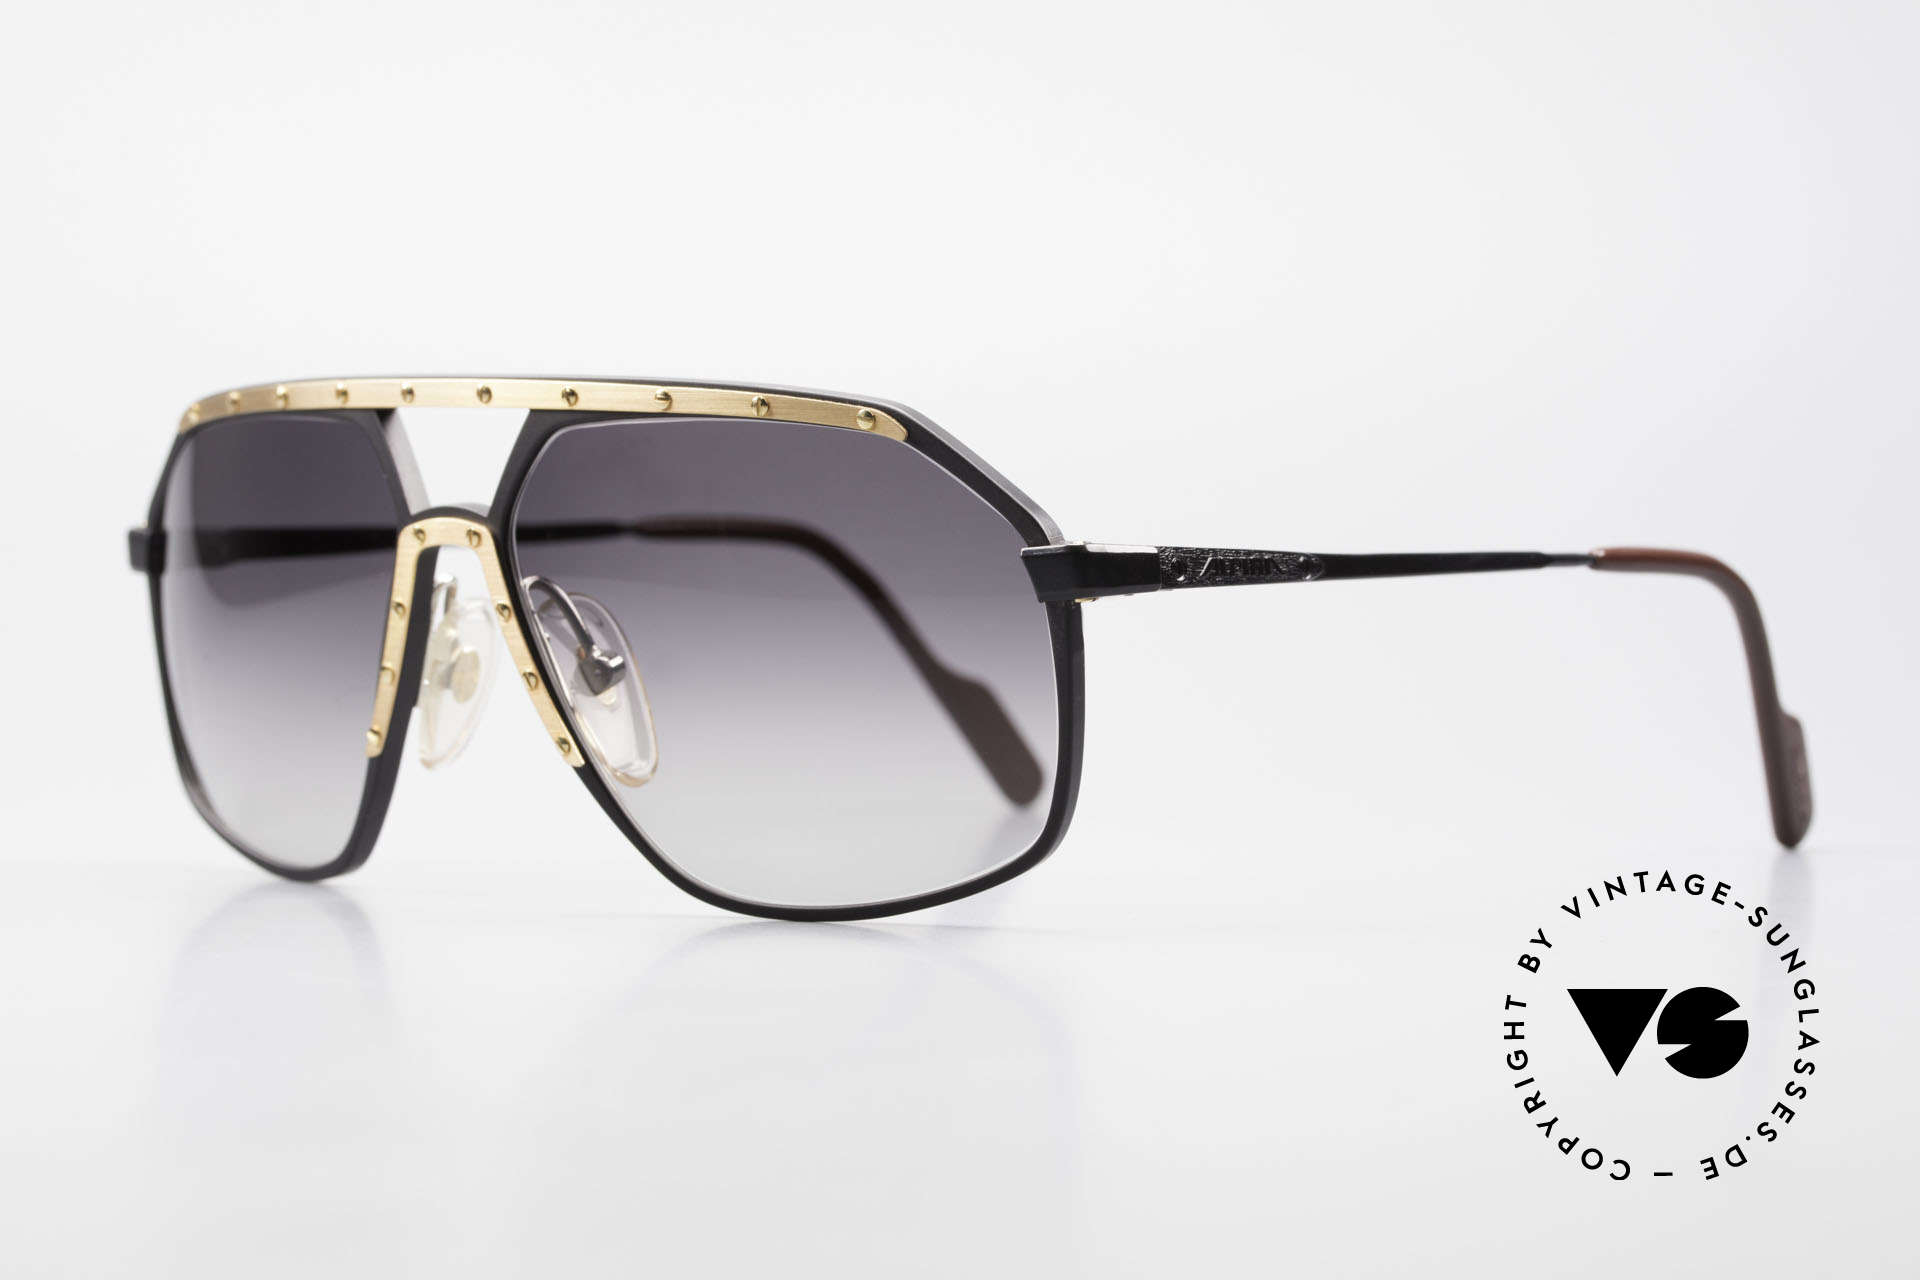 Alpina M6 No Retro Shades True Vintage, famous for the 'W.Germany' frame and the screws, Made for Men